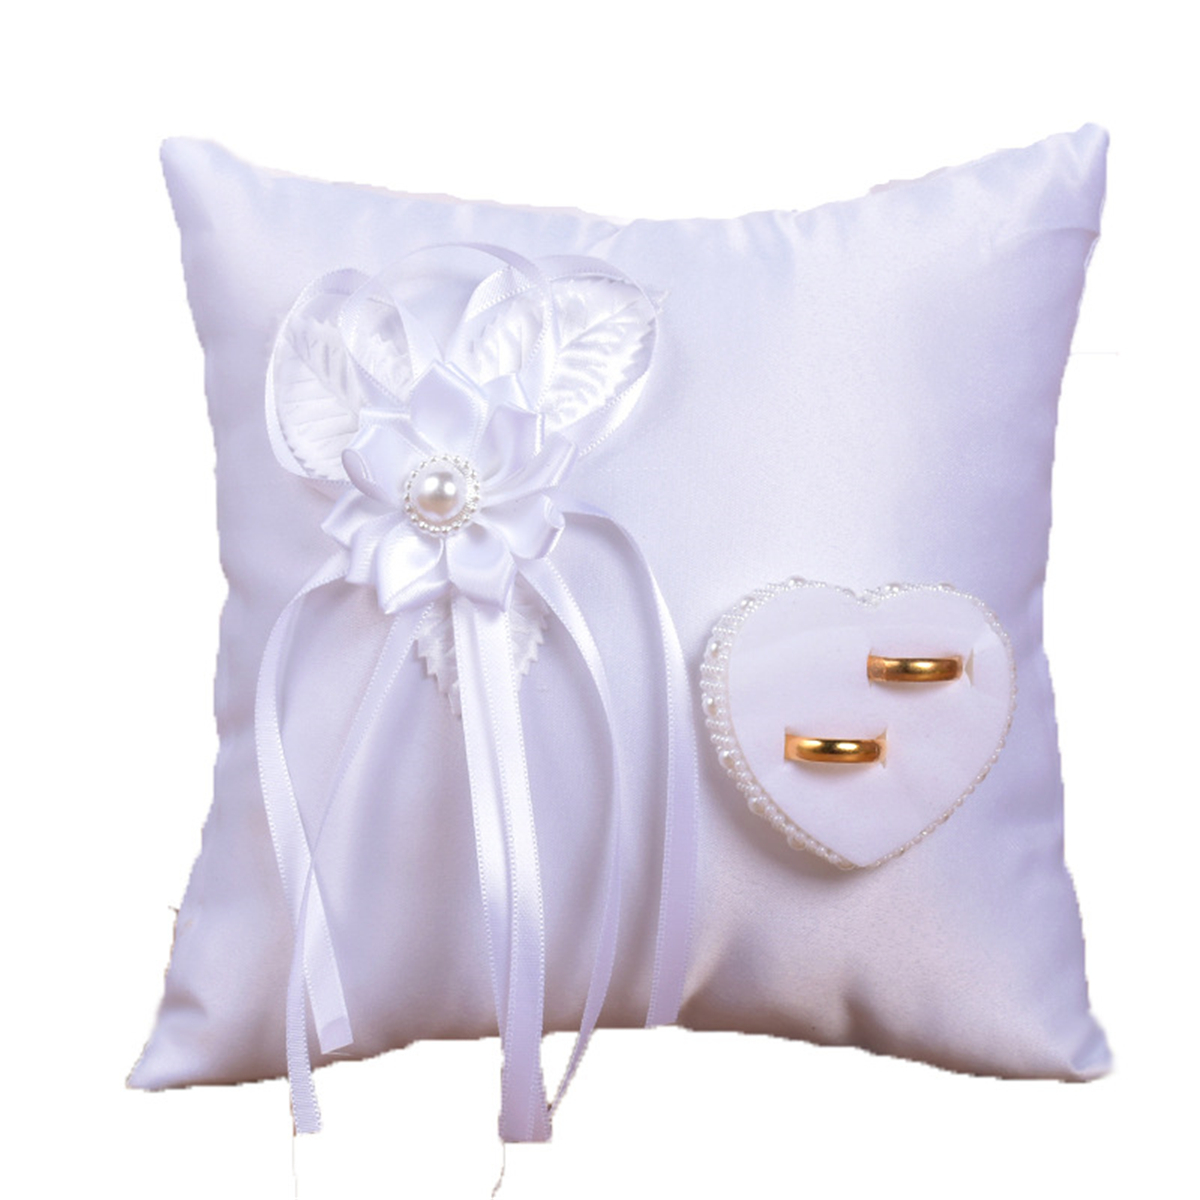 white wedding ring bearer pillow cushion for indoor outdoor beach wedding ceremony 7 9x7 9 inch rings not included walmart com